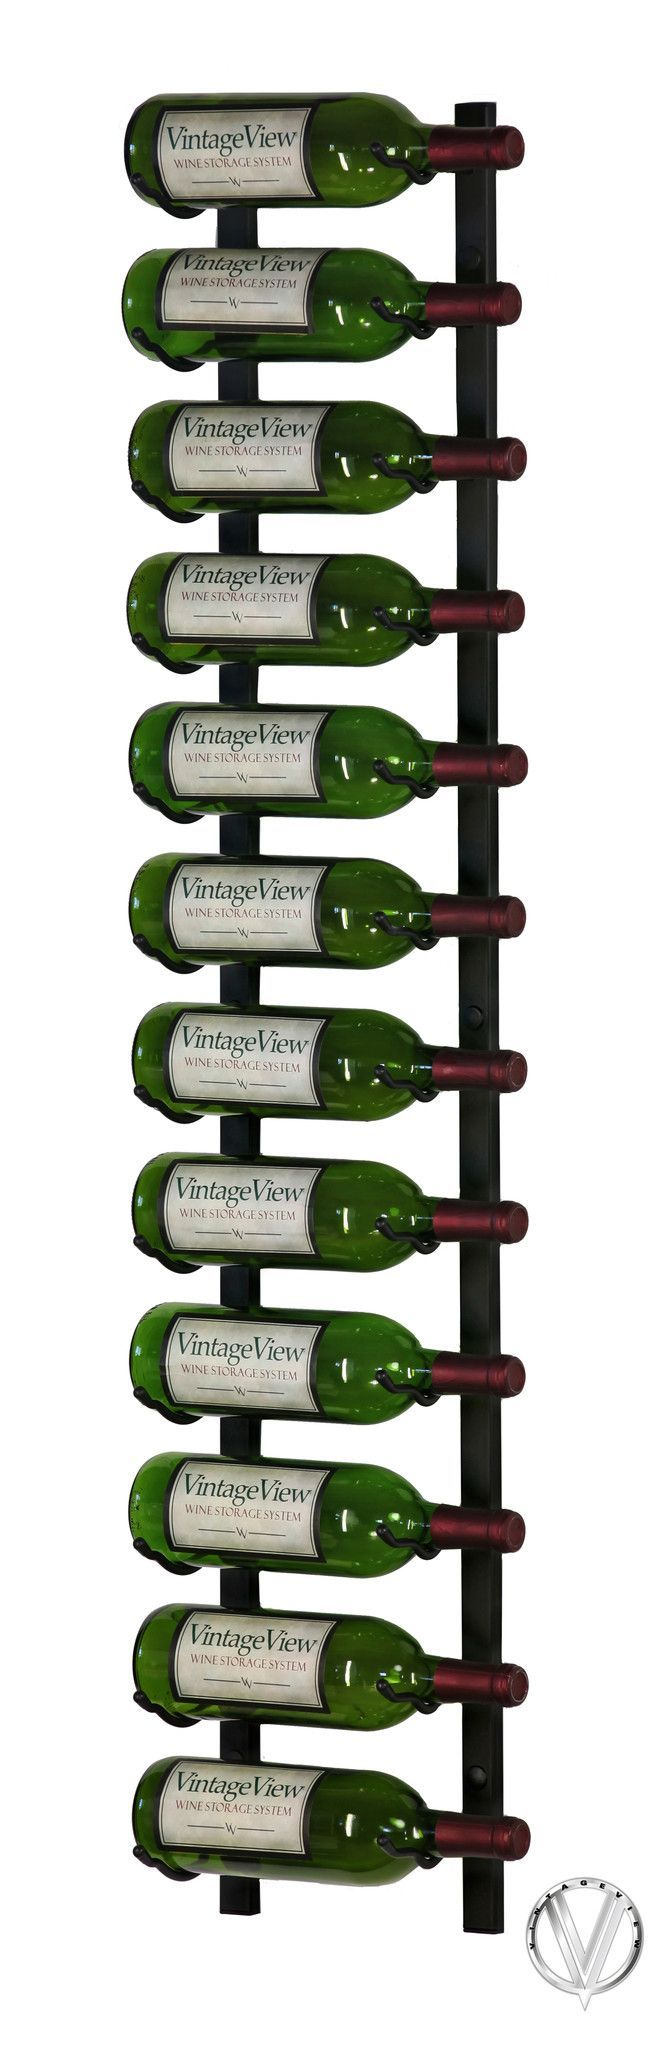 The 4-foot Wall Series option is Vintage View's largest stand-alone Wall Series options, with a max capacity of 36 bottles per section. This option is great for collectors that need maximum capacity o